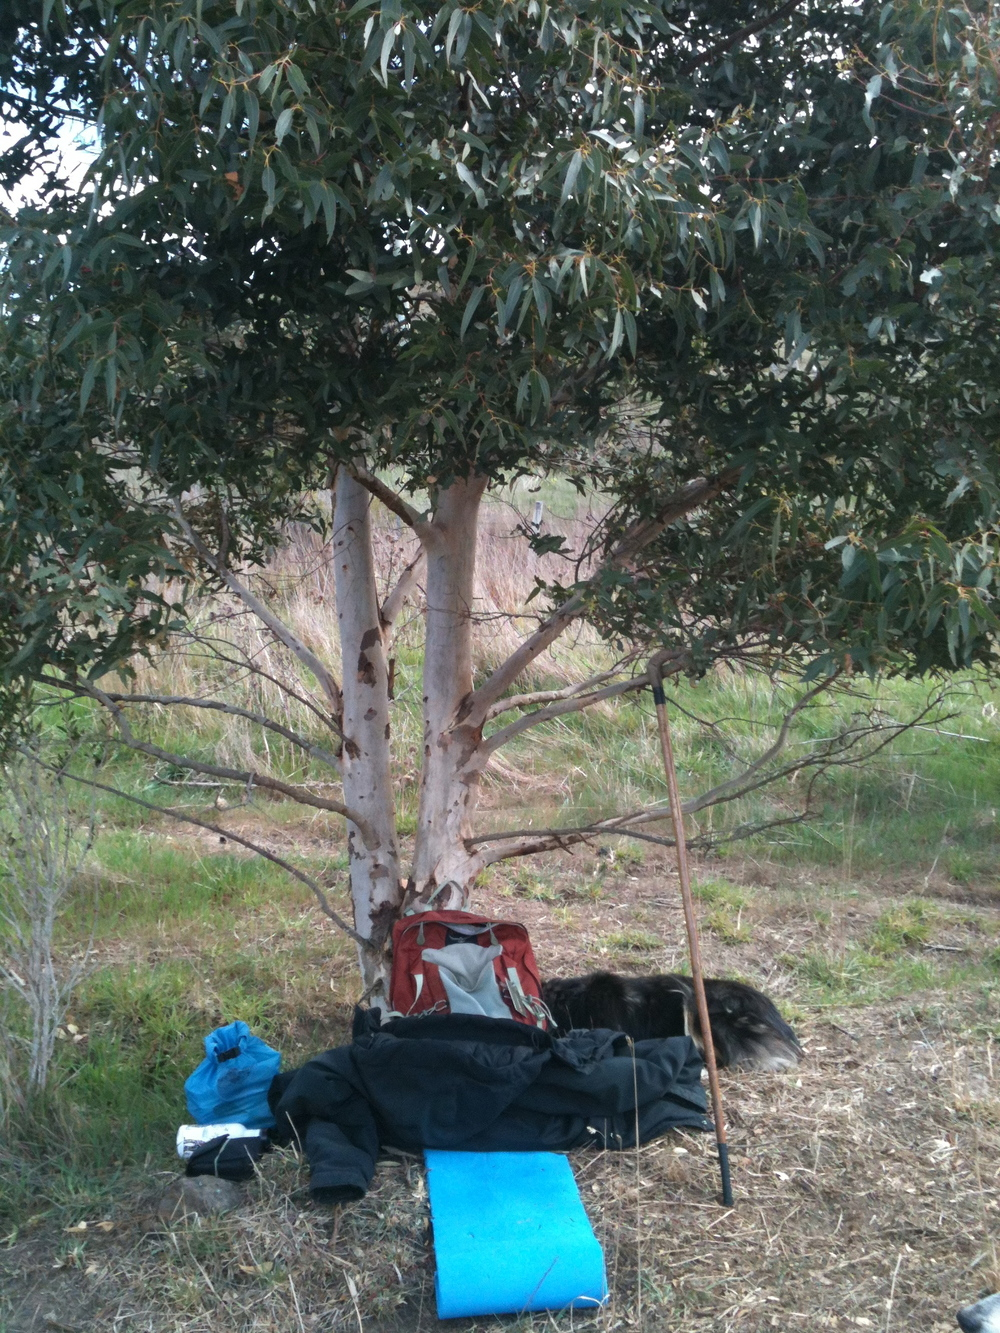 My gear for the day. The tree is one I planted in 2008.